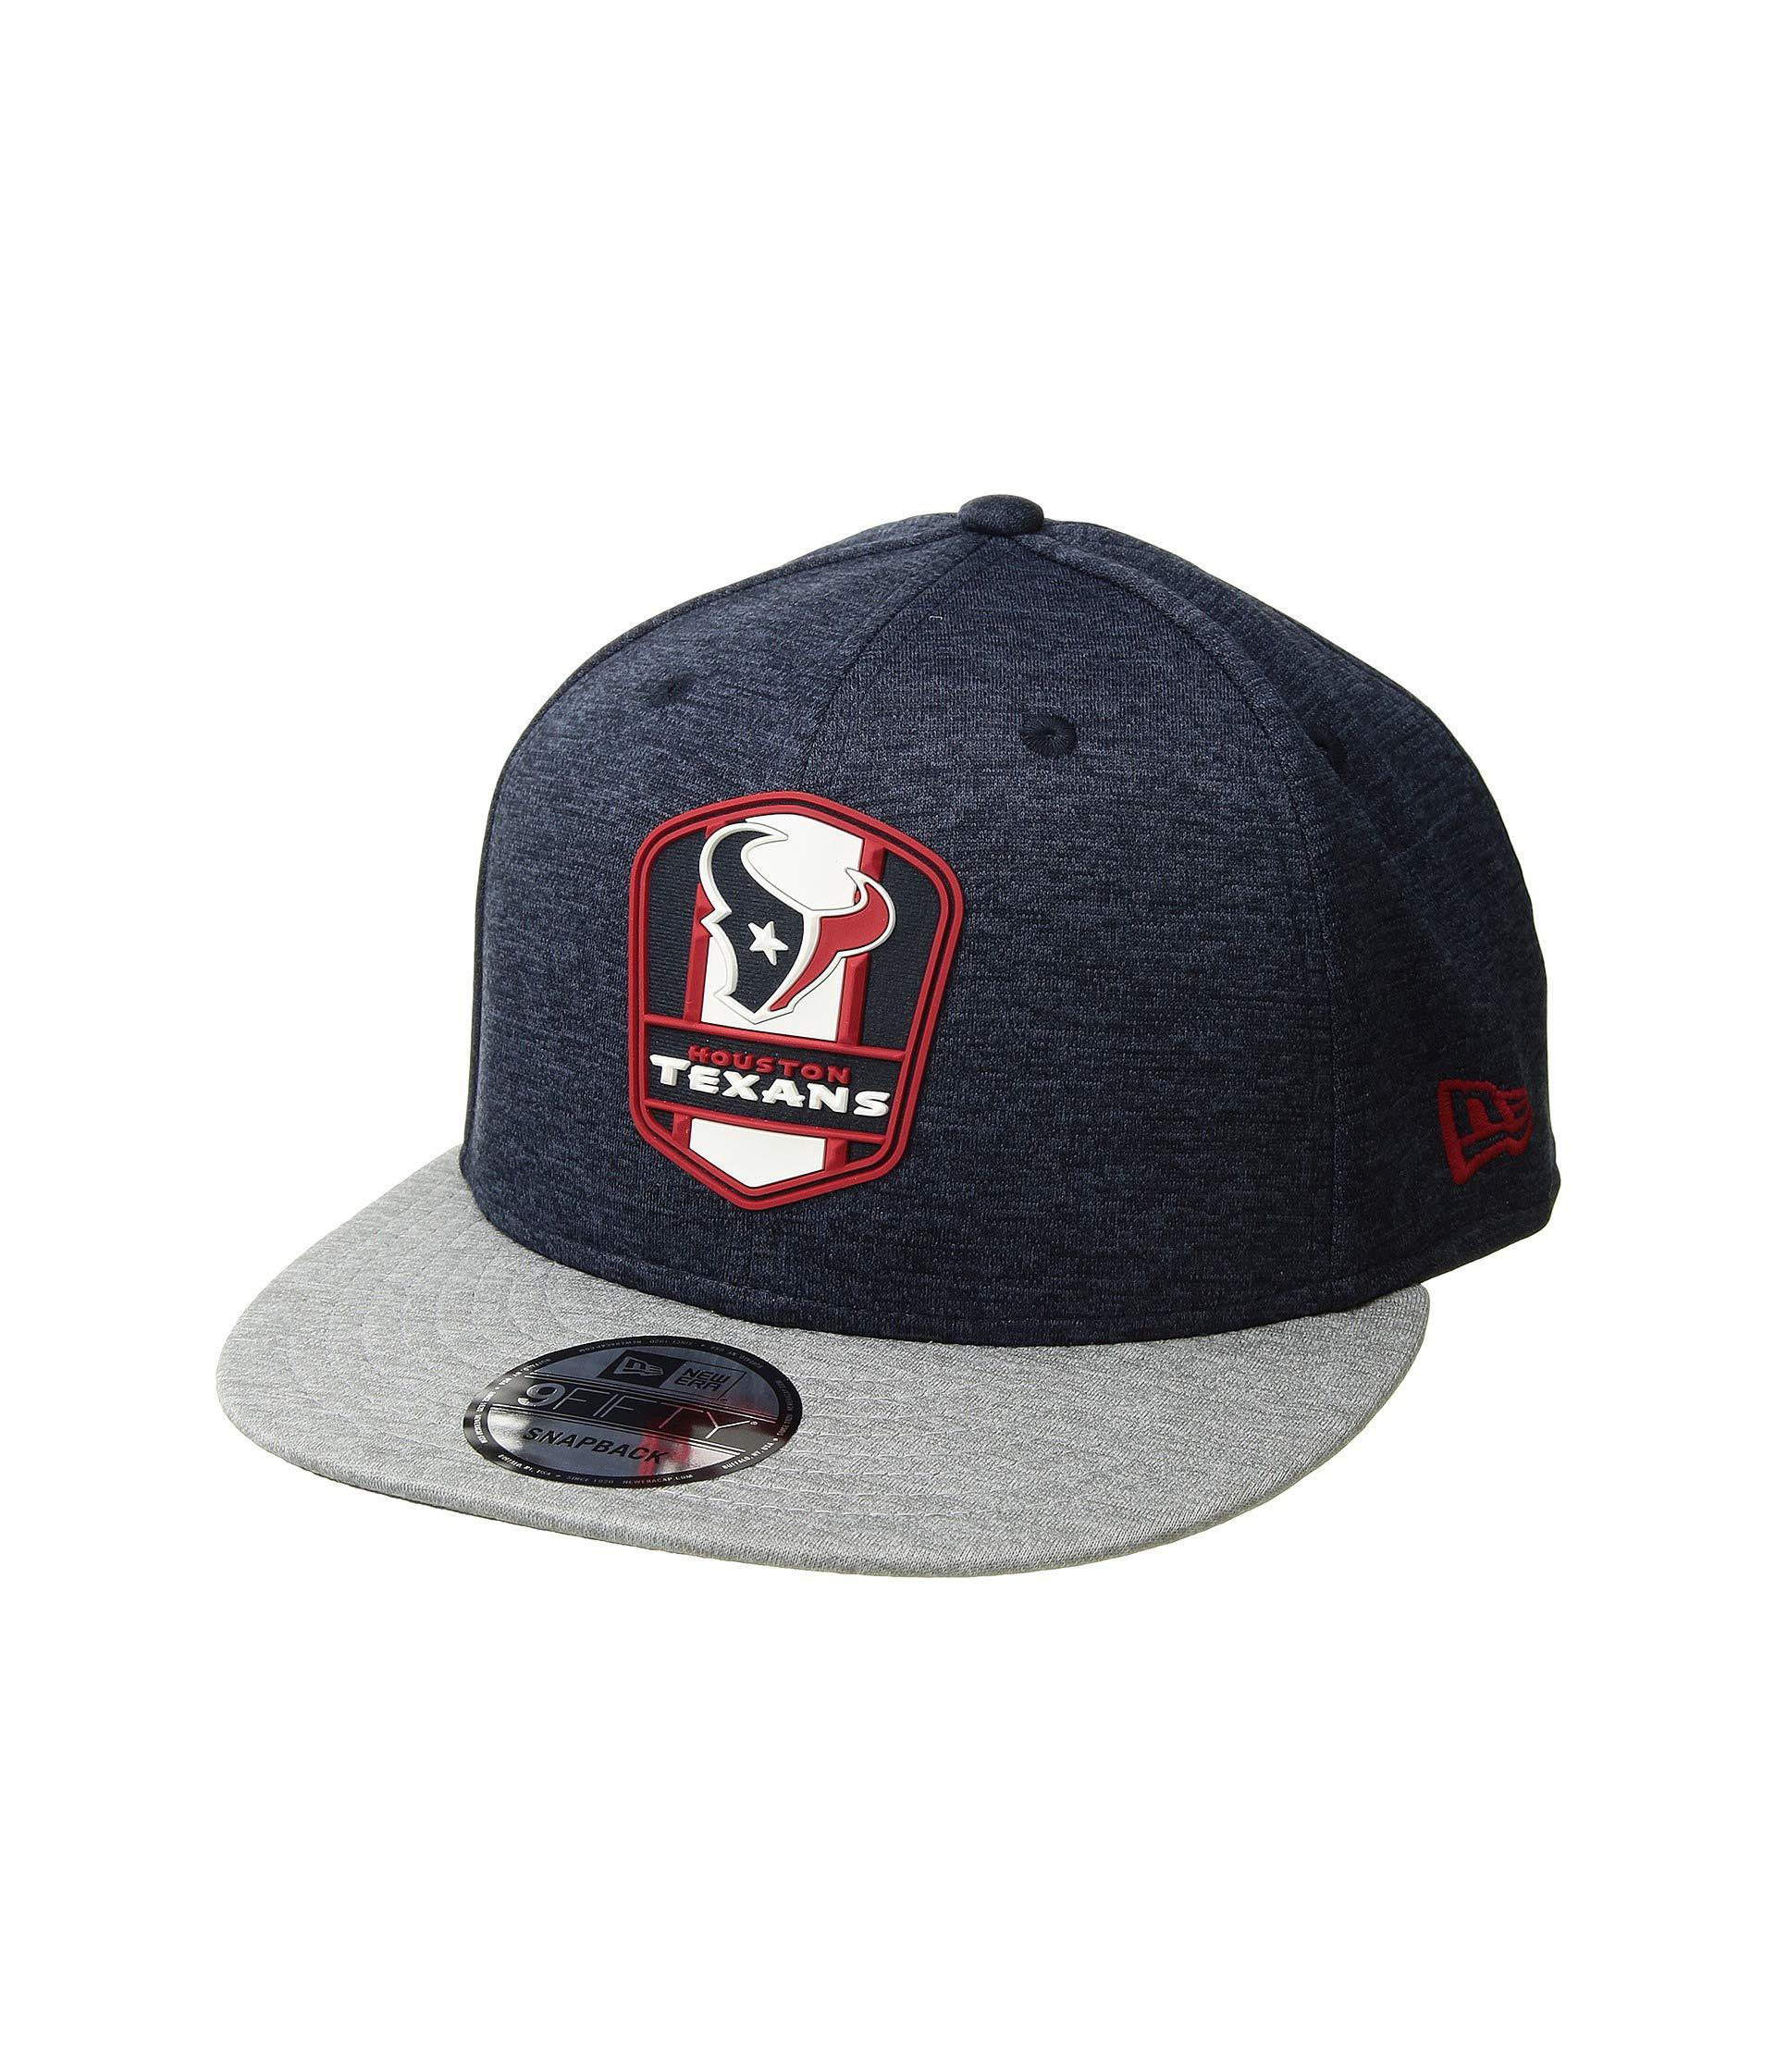 Lyst - Ktz 9fifty Official Sideline Away Snapback - Houston Texans ... bf740e903145